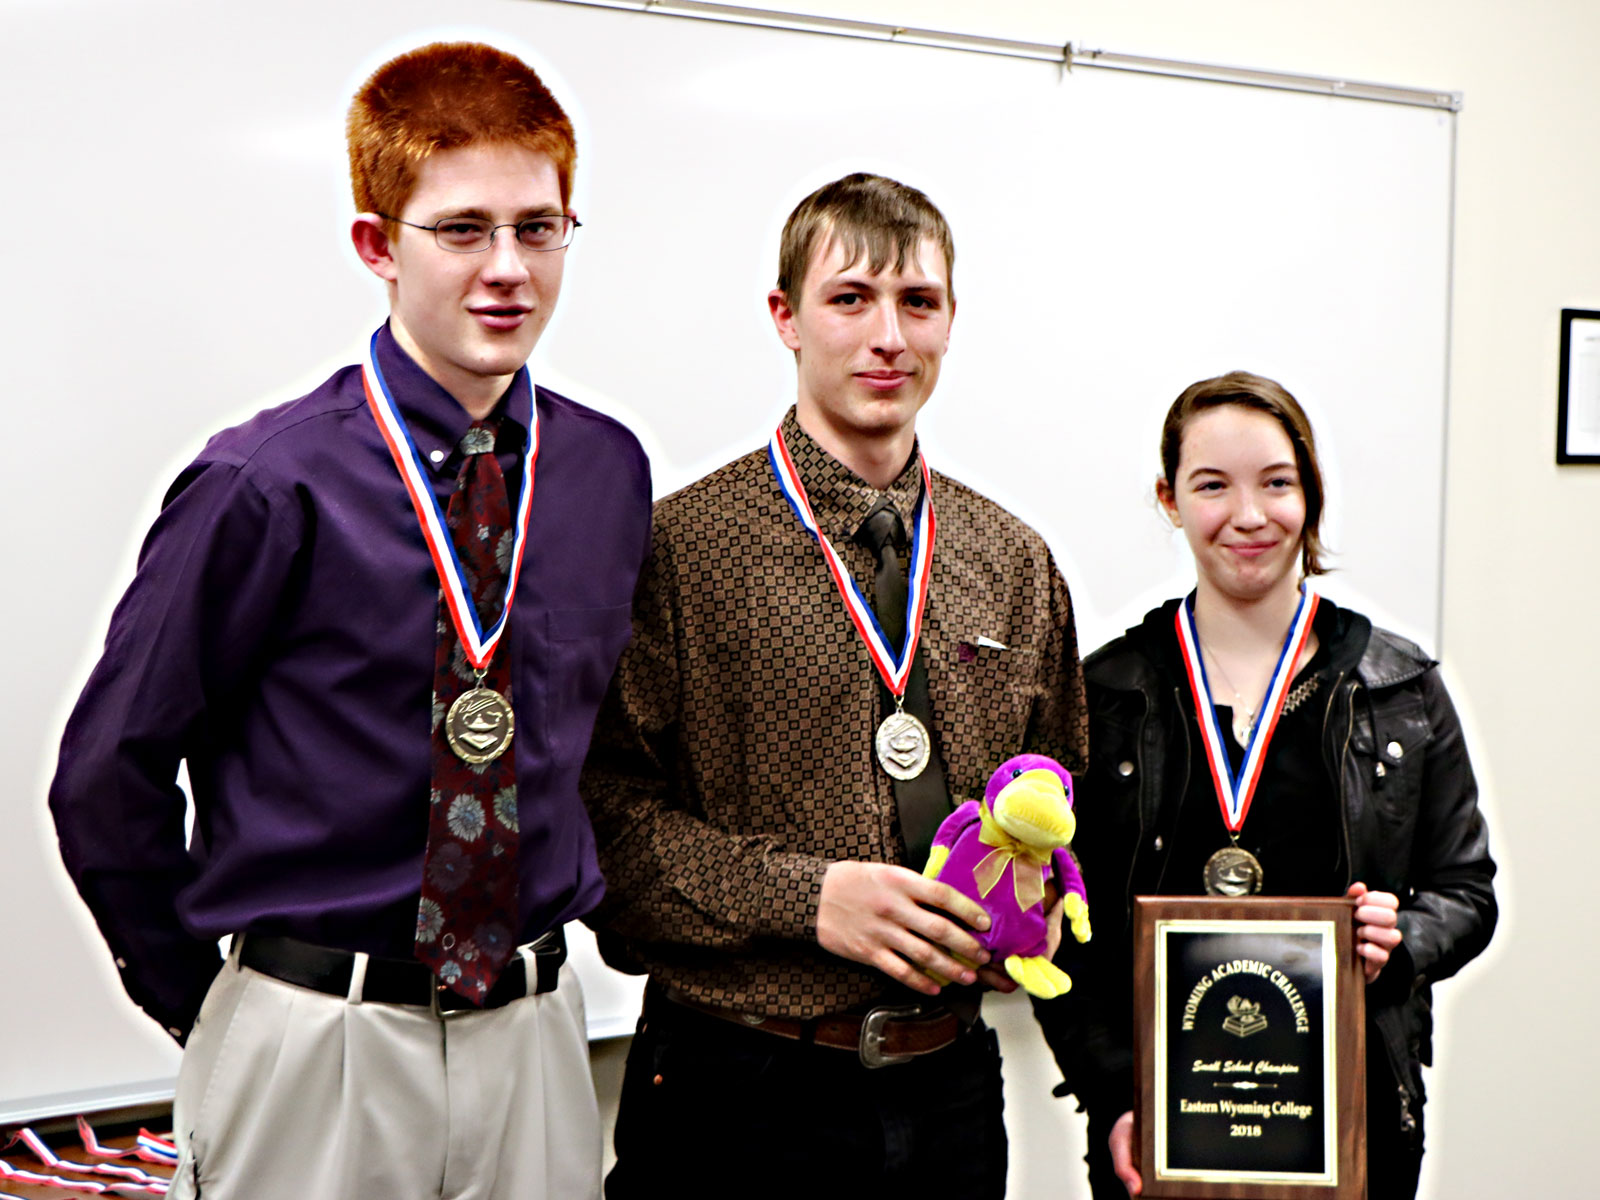 Riverside High School team 1 placed 3rd and won the Small School at the Wyoming Academic Challenge held at EWC